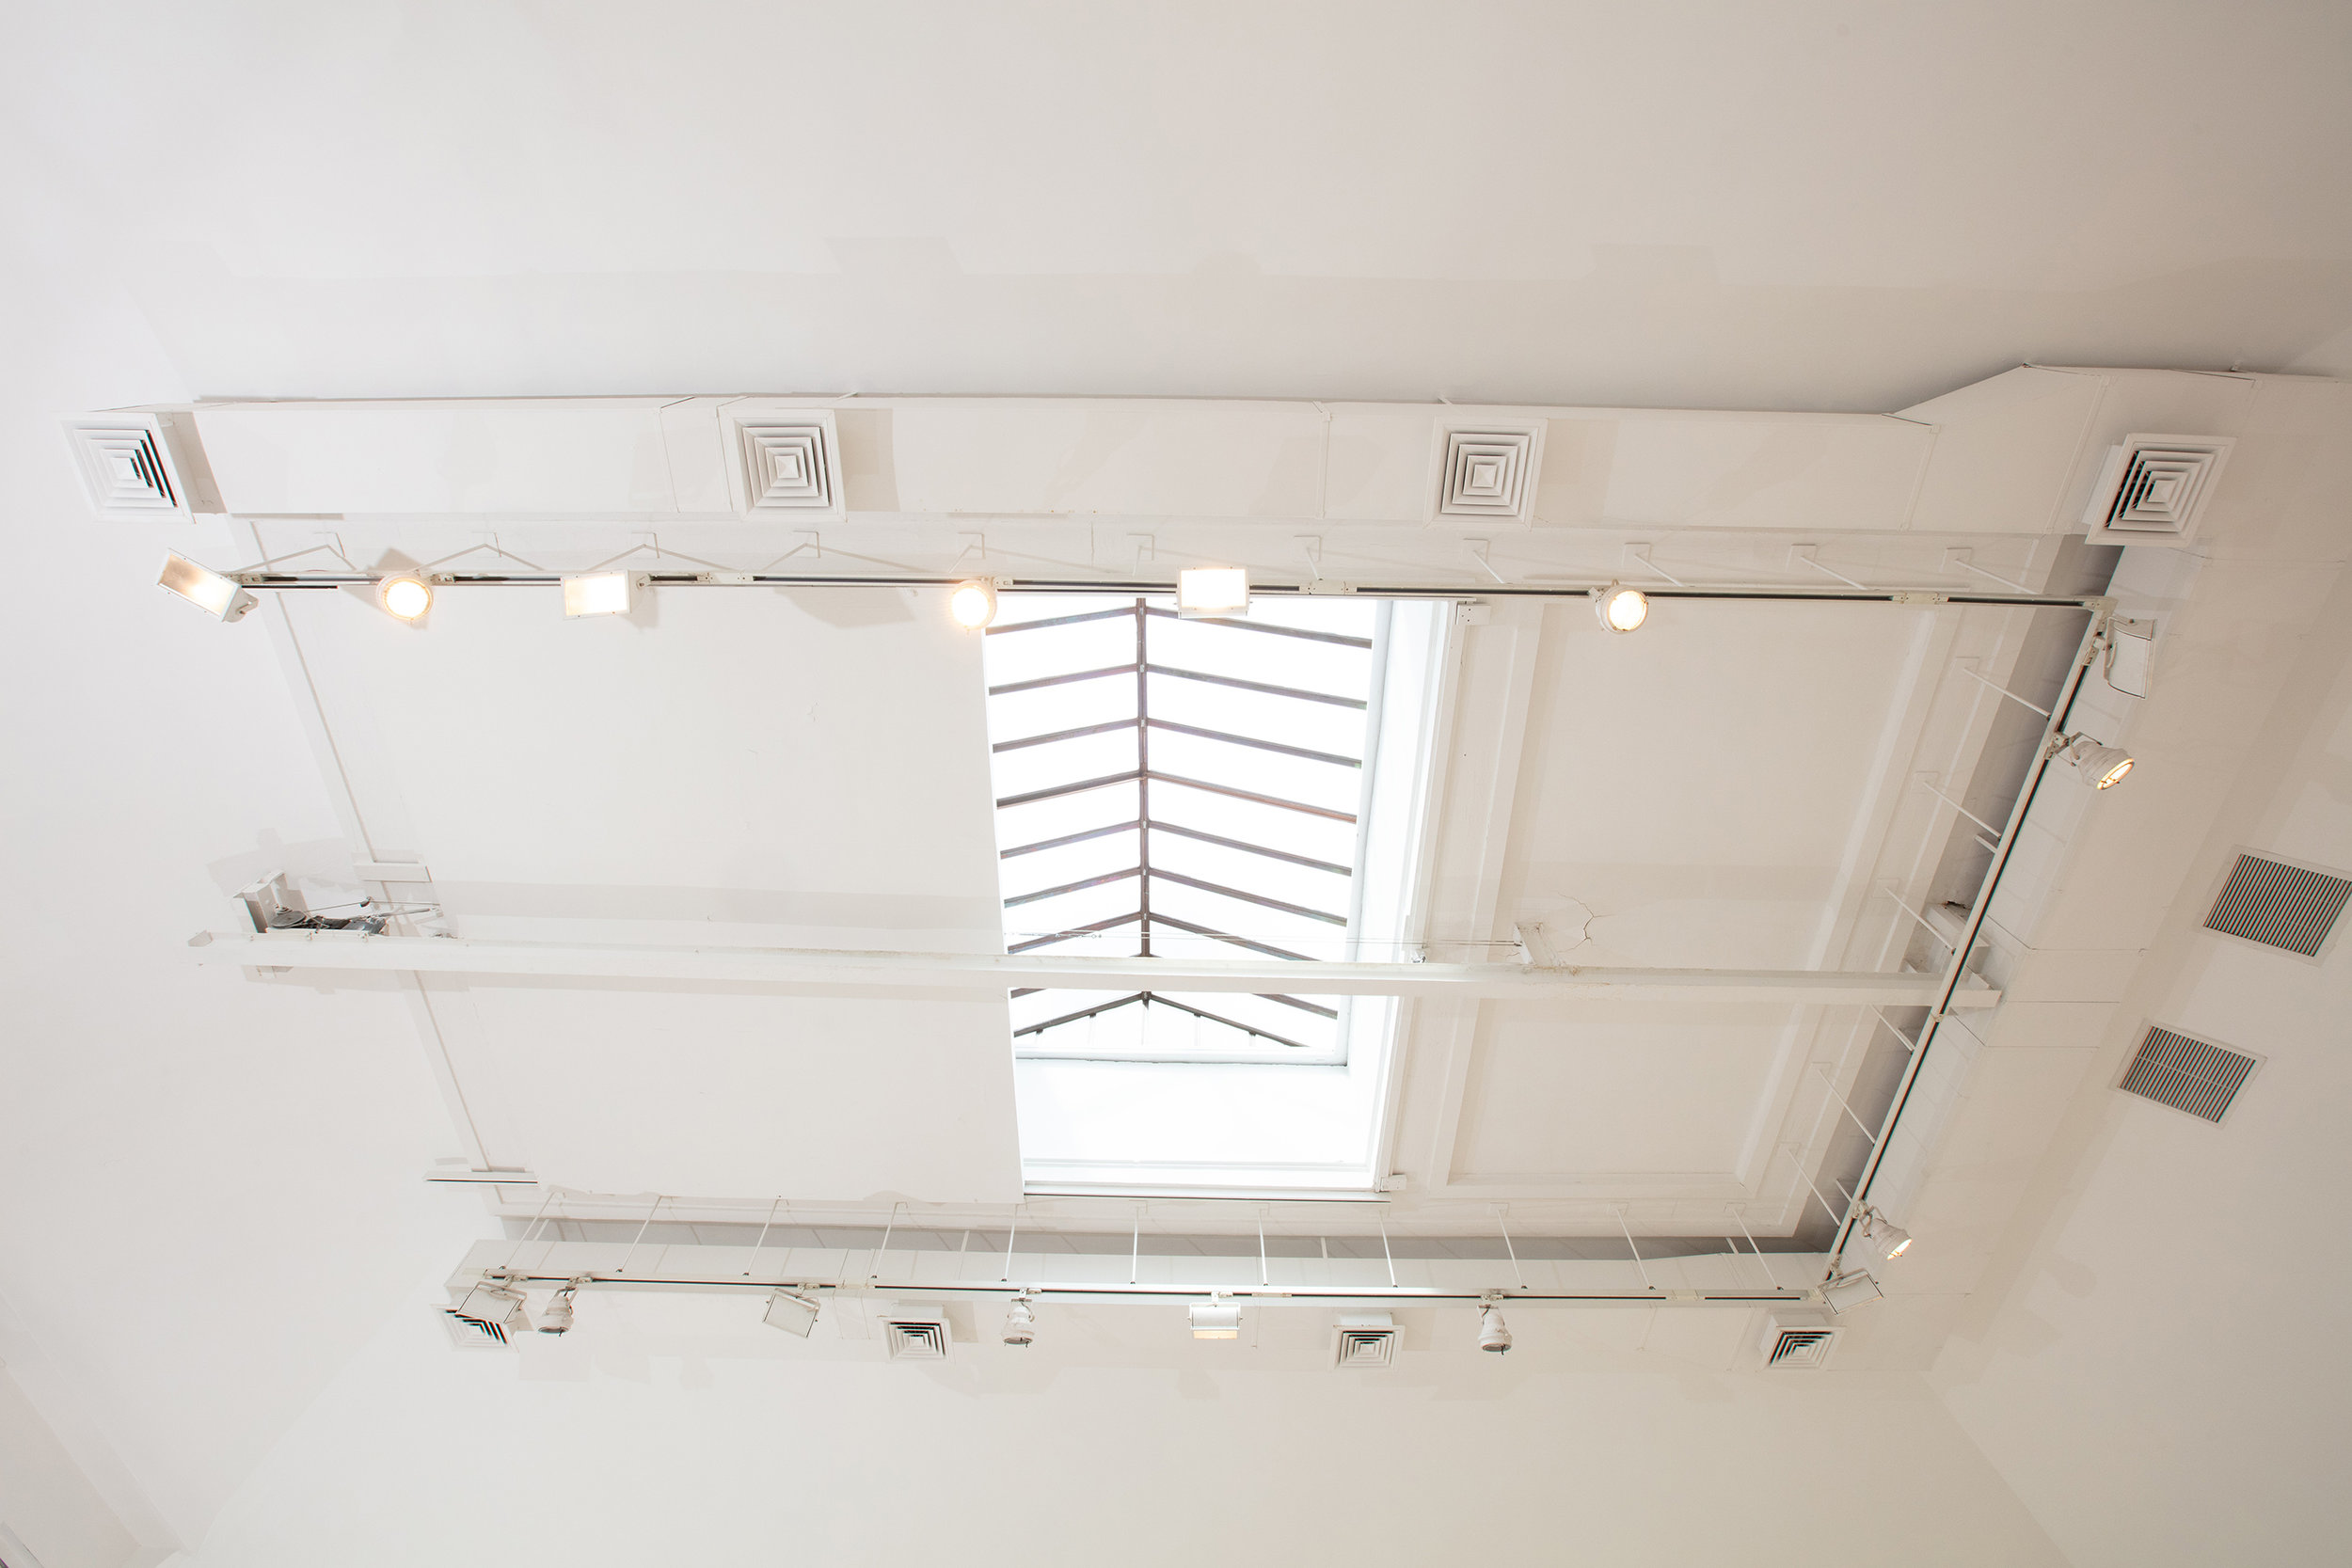 Skylight which can be closed via a switch.